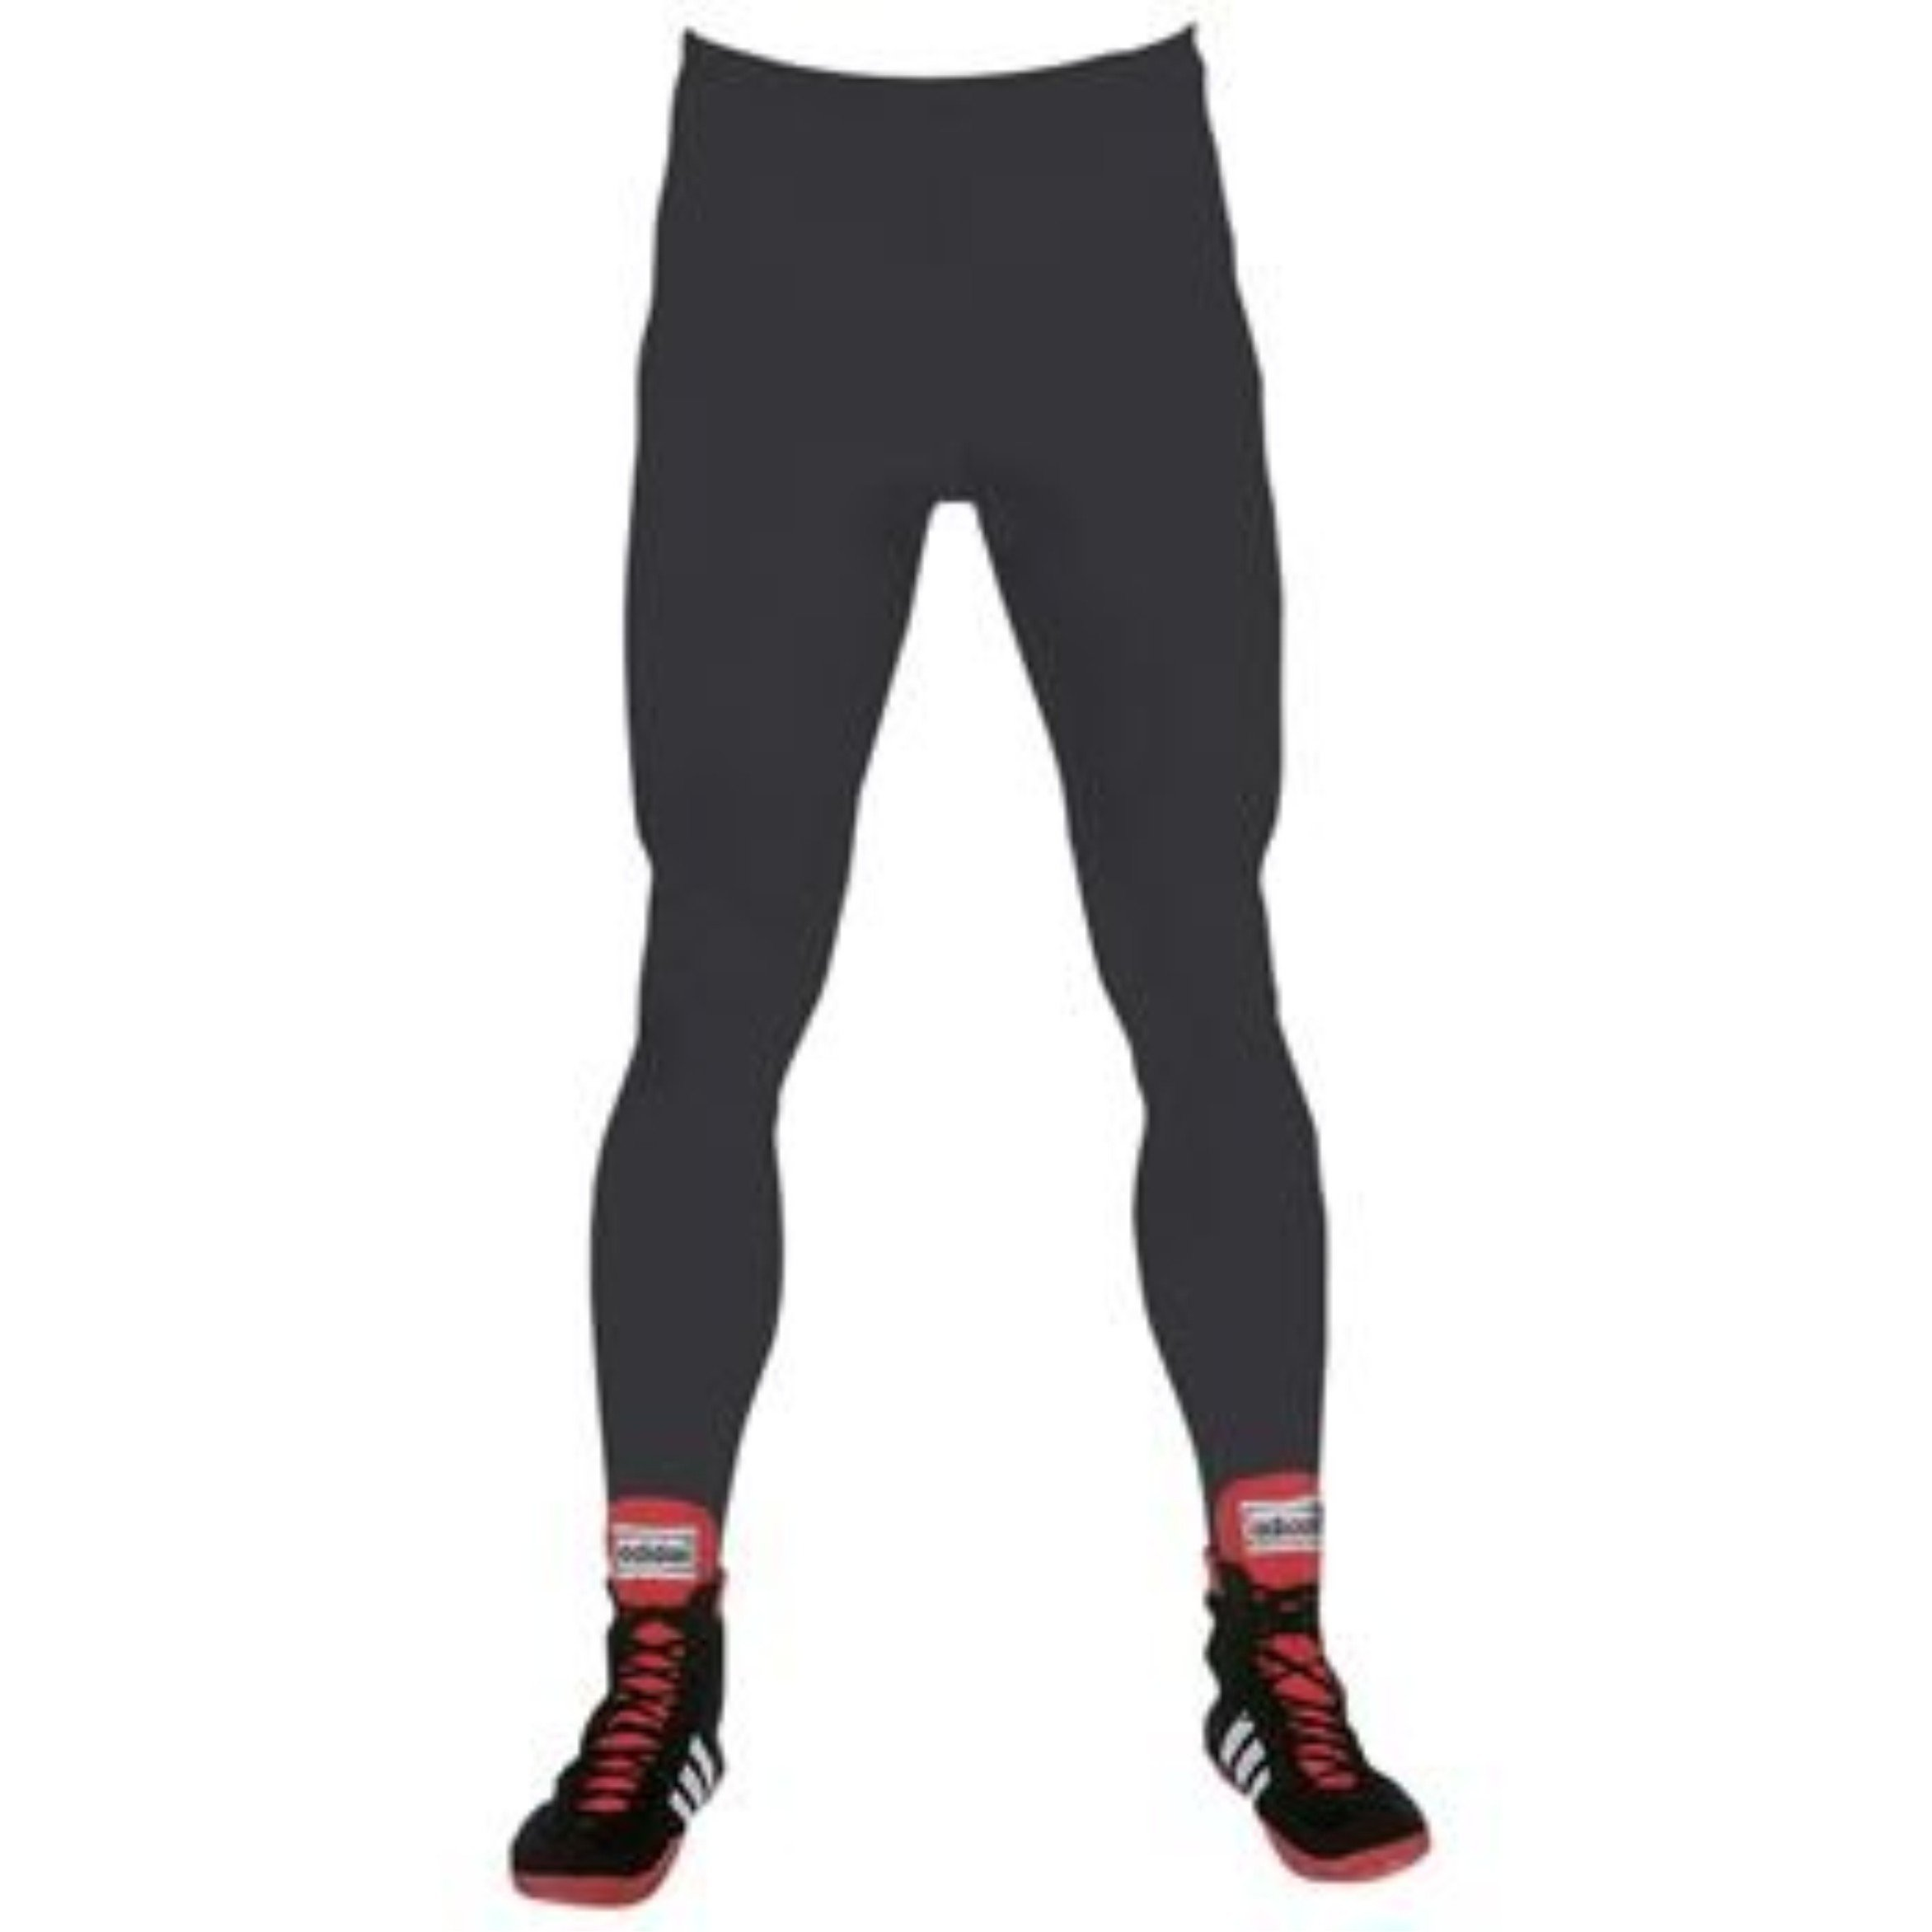 Brute Lycra Tights W/Stirrups - SIZE: X-Small, COLOR: Black